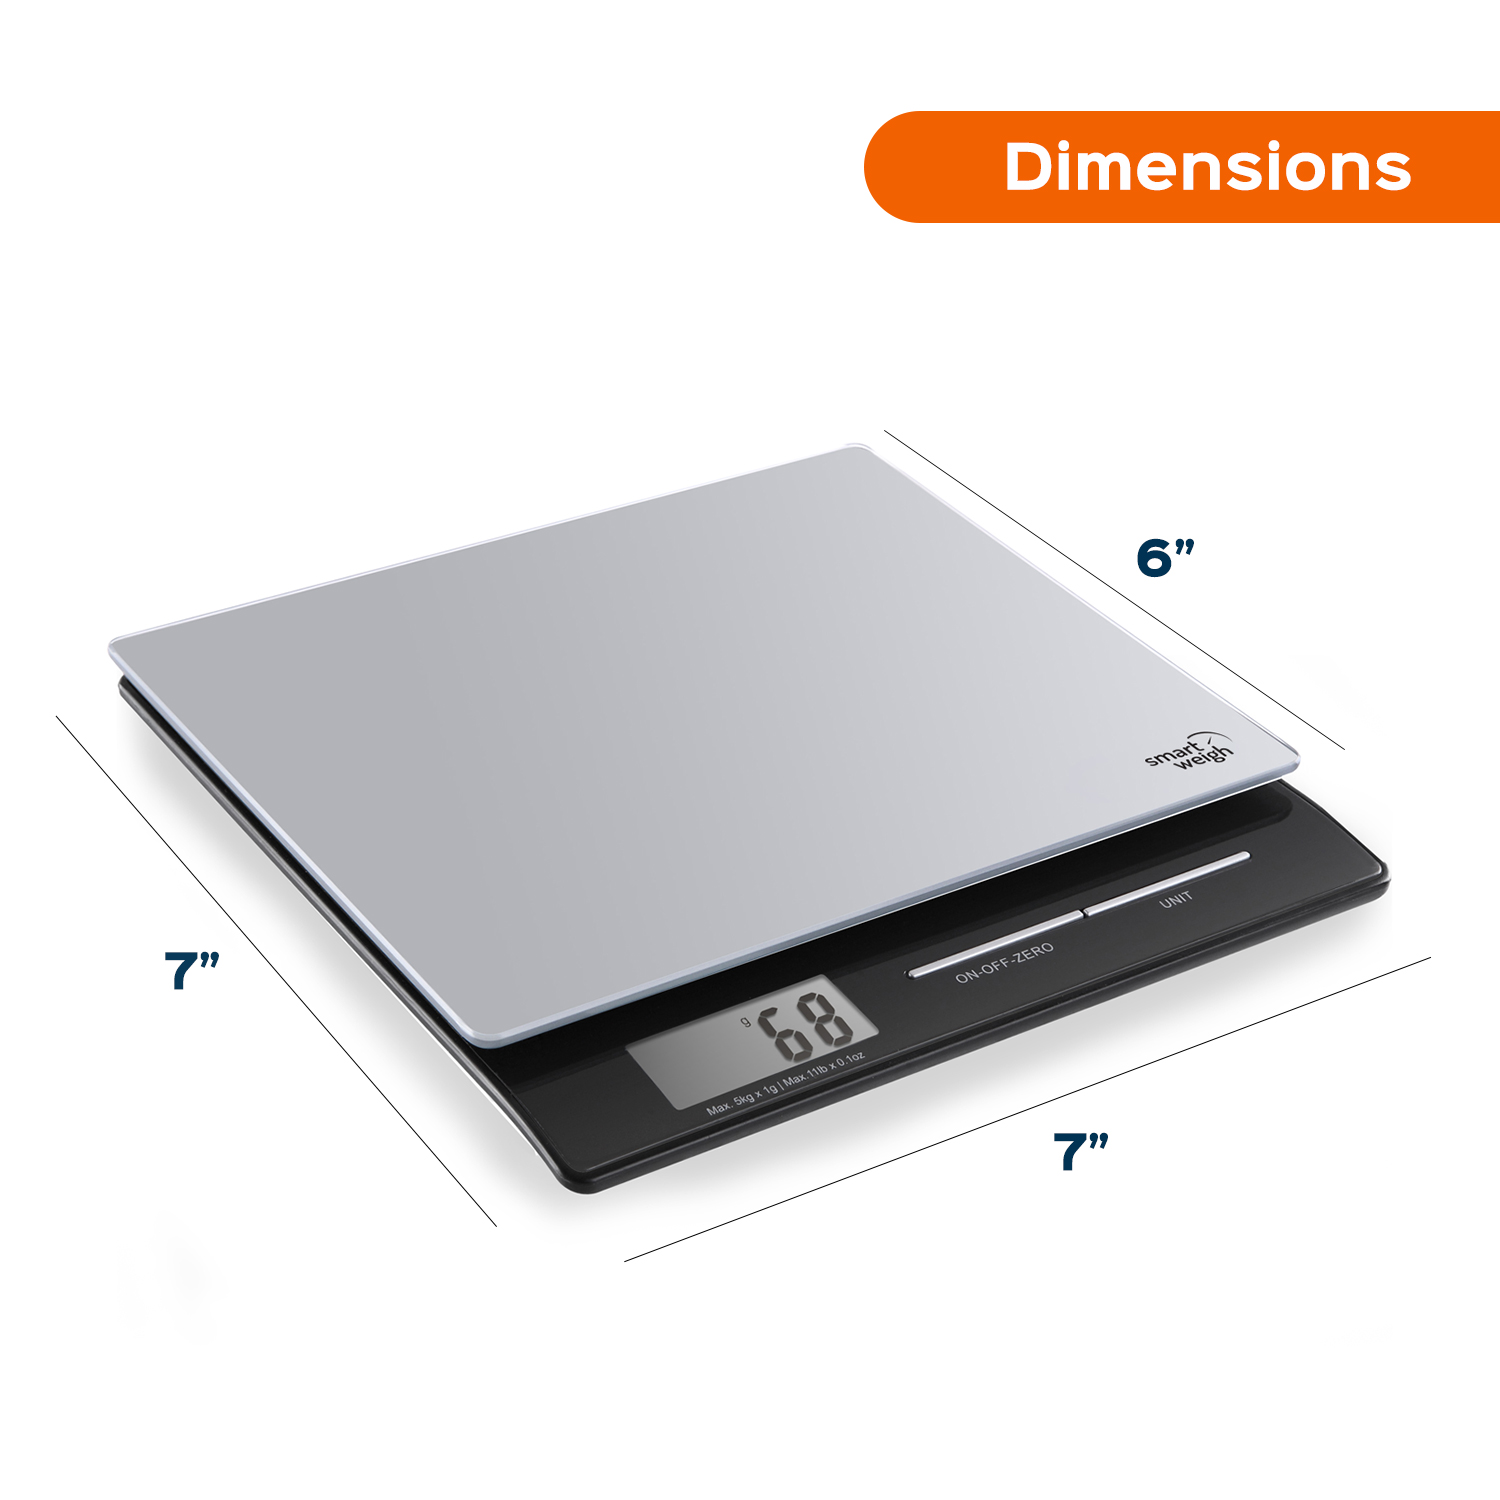 Smart Weigh USPS Digital Shipping Postal Scale Stainless Steel 1oz ...